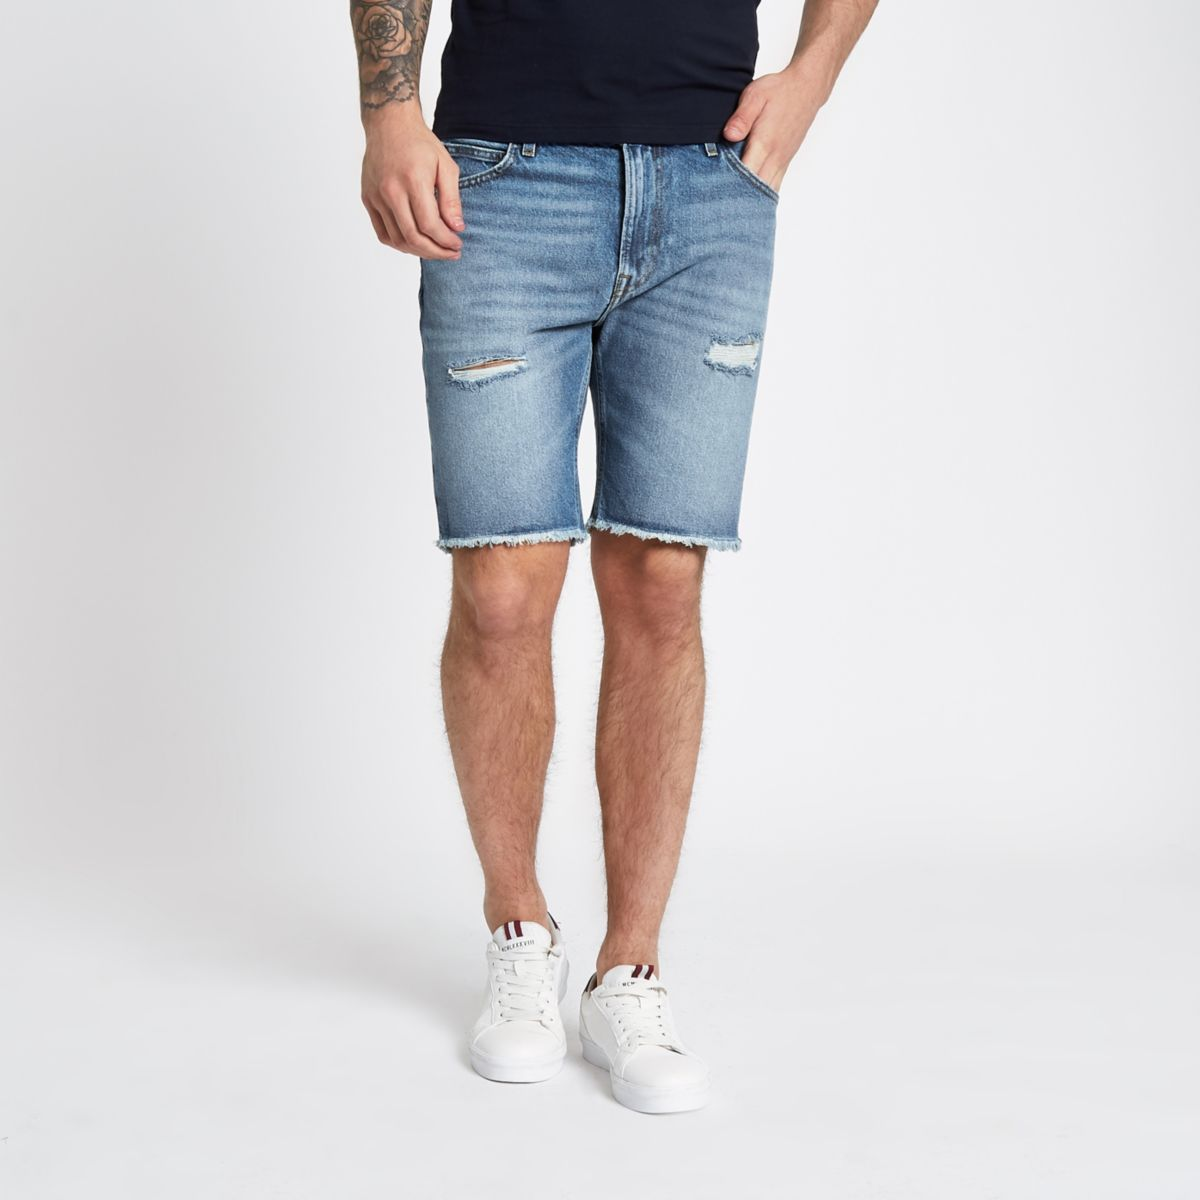 Blue Lee raw hem denim shorts